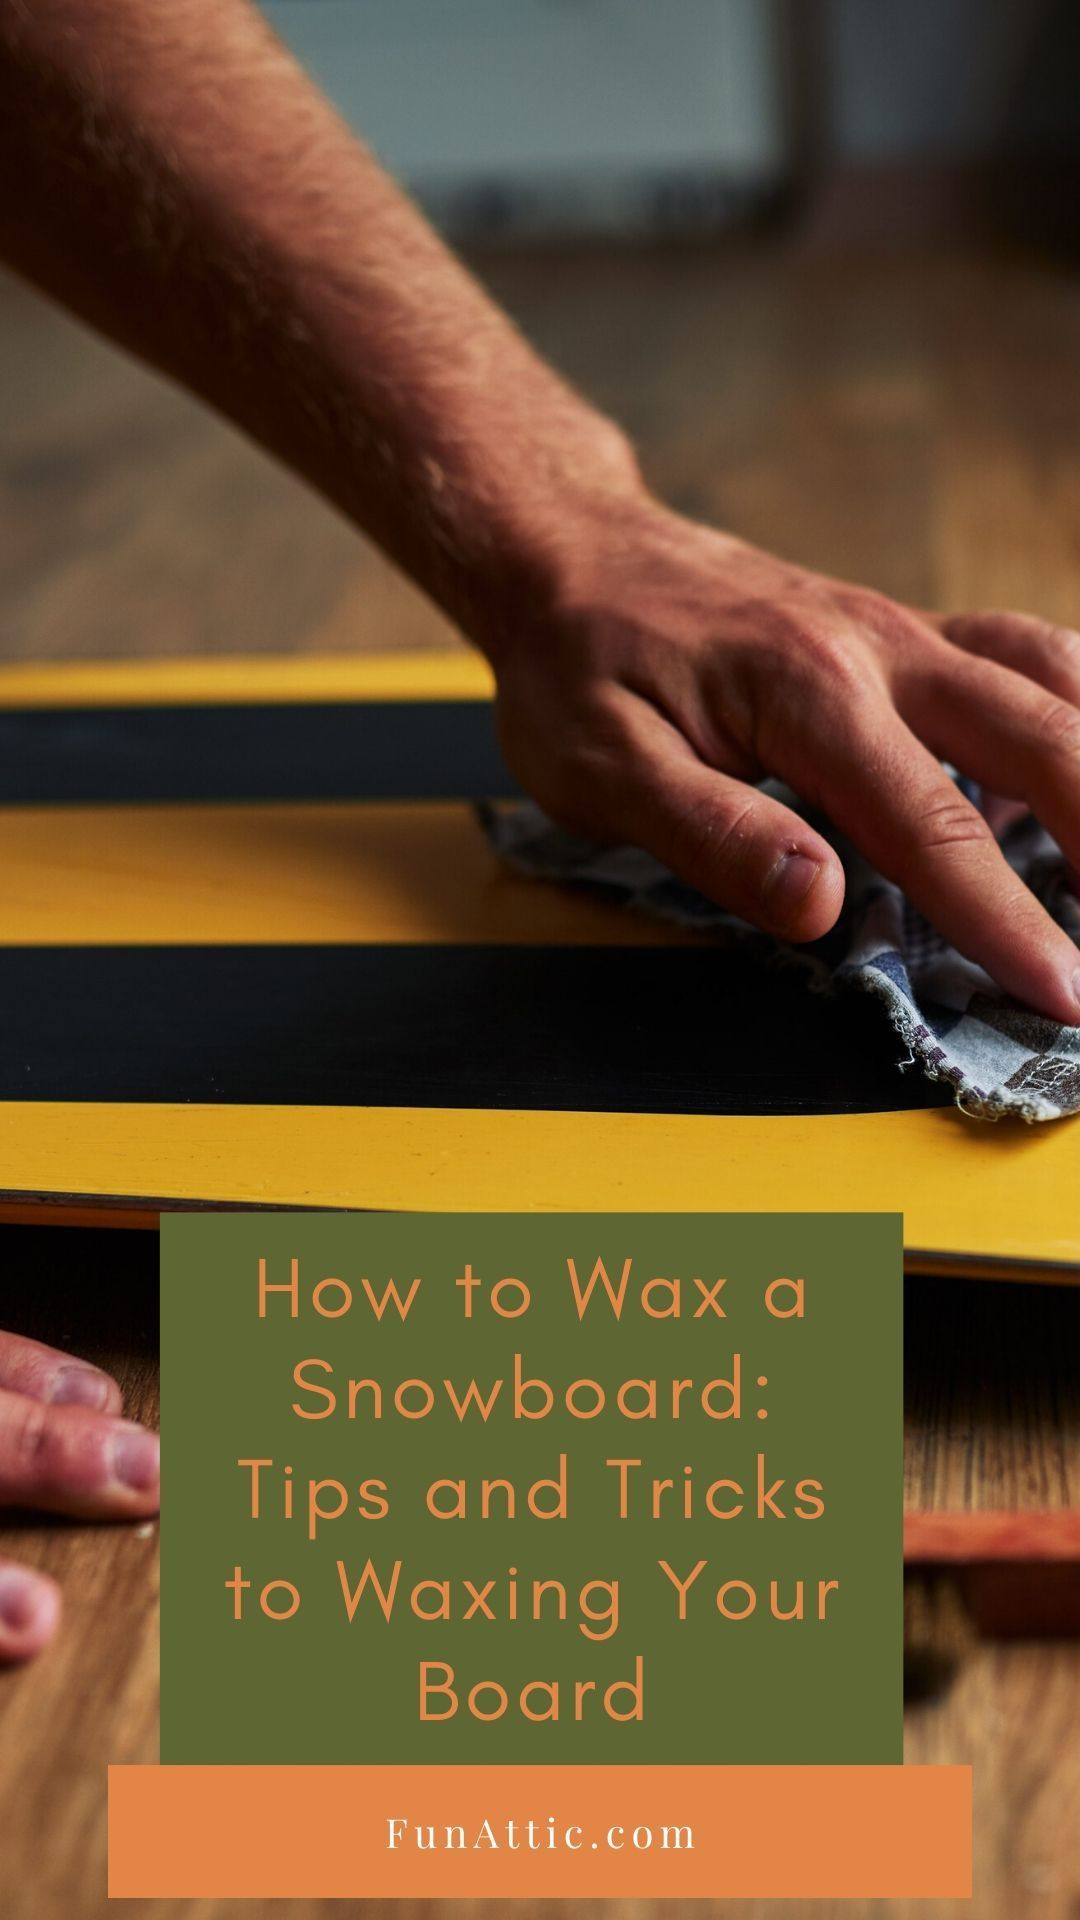 How To Wax A Snowboard Tips And Tricks To Waxing Your Board Fun Attic Relaxing Things To Do Youth Group Lessons Diy Projects For Kids